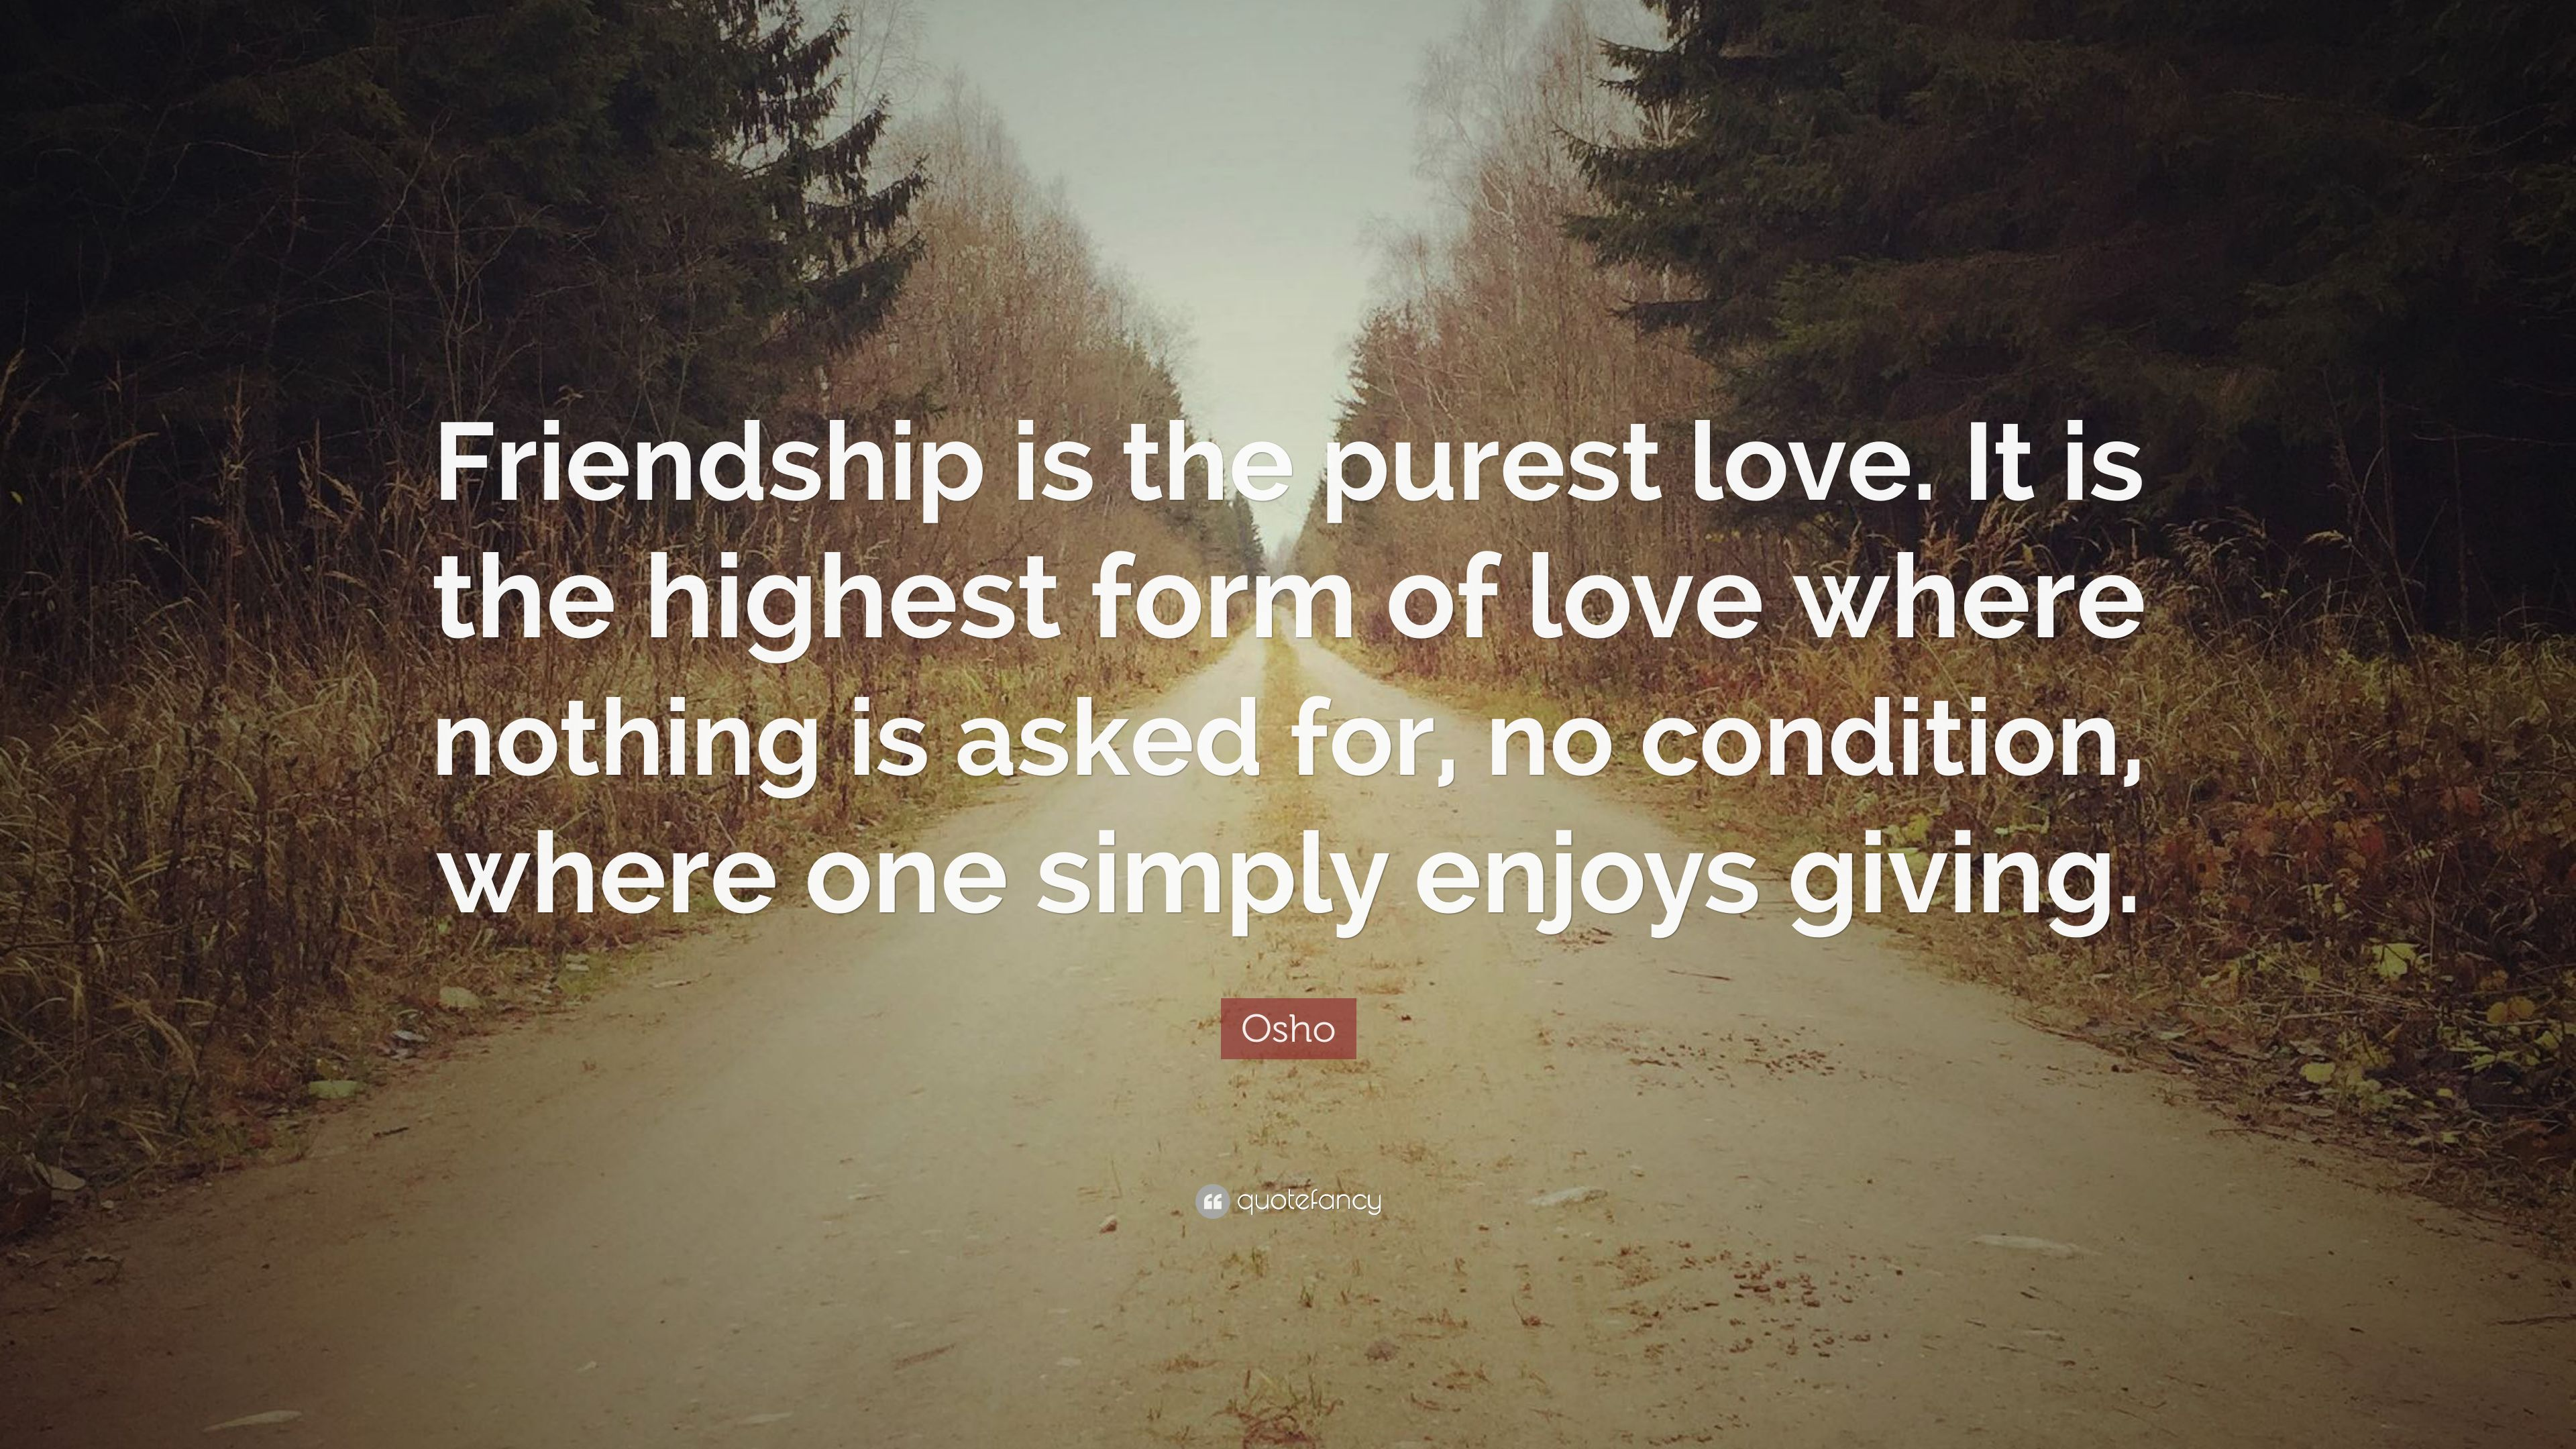 Turkish Quotes About Friendship Friendship Quotes From Osho Related Pictures Osho Quotes Sayings